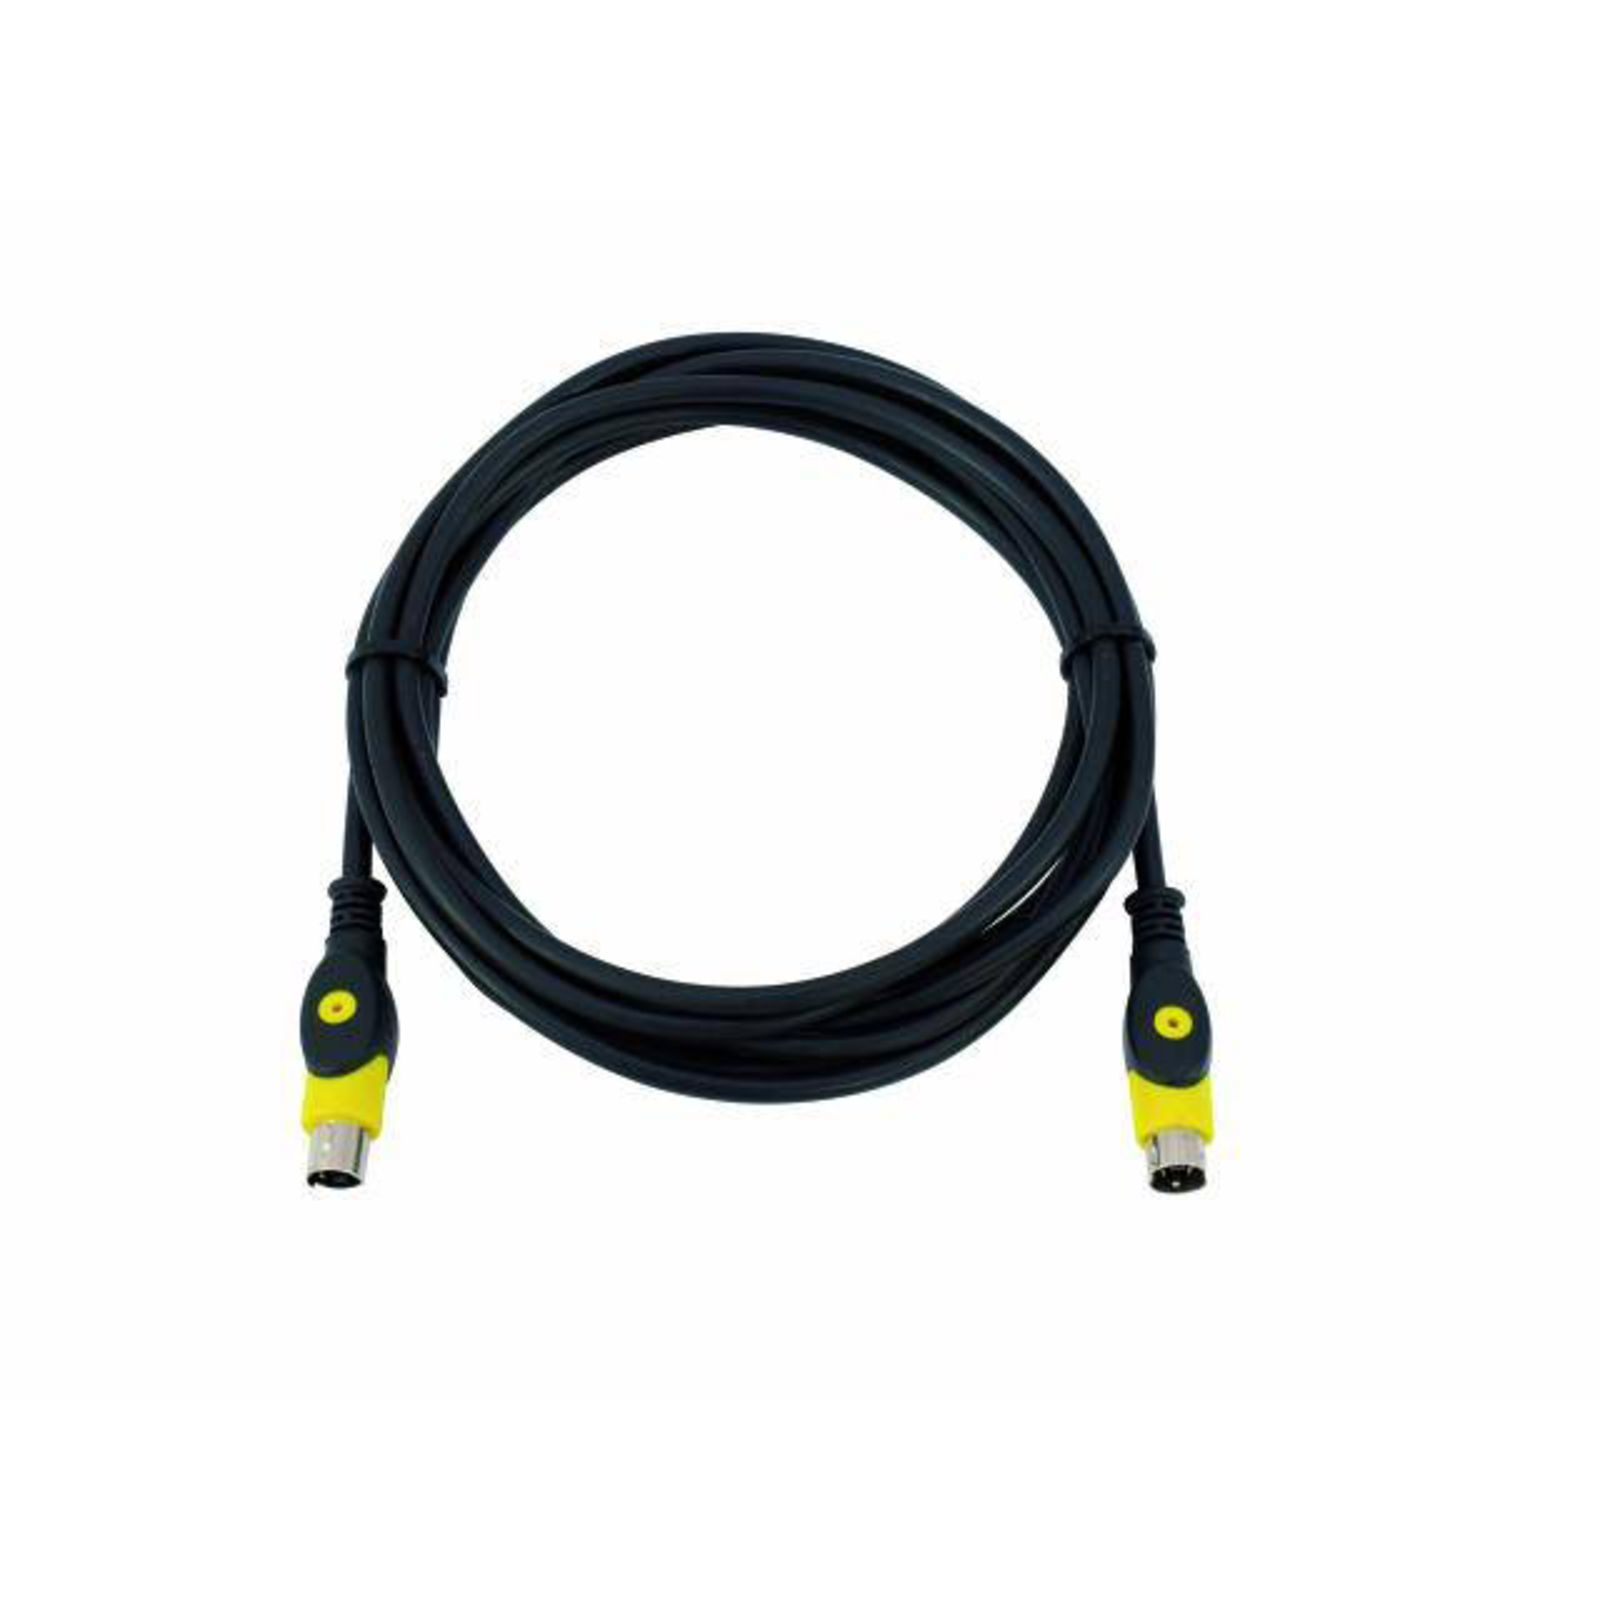 lightmaXX Cable SVS-30 S-Video 3m Imagem do produto